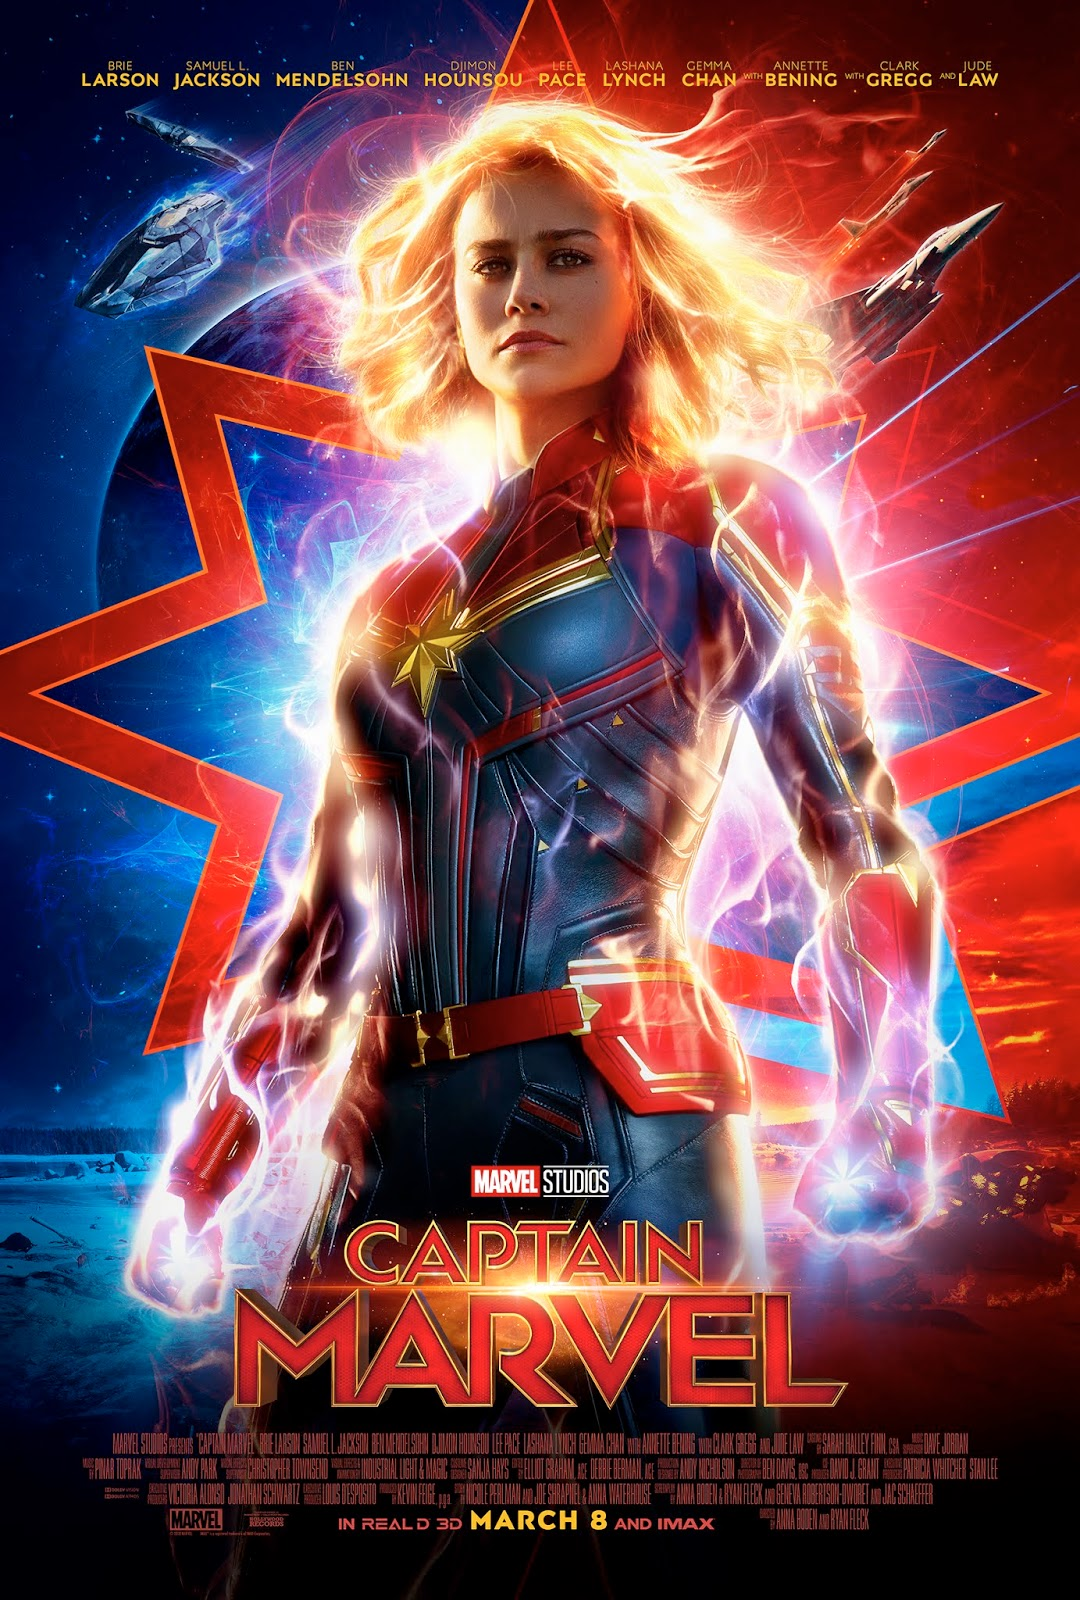 Once Upon a Twilight!: Trailer Just Released! - Marvel's #CaptainMarvel